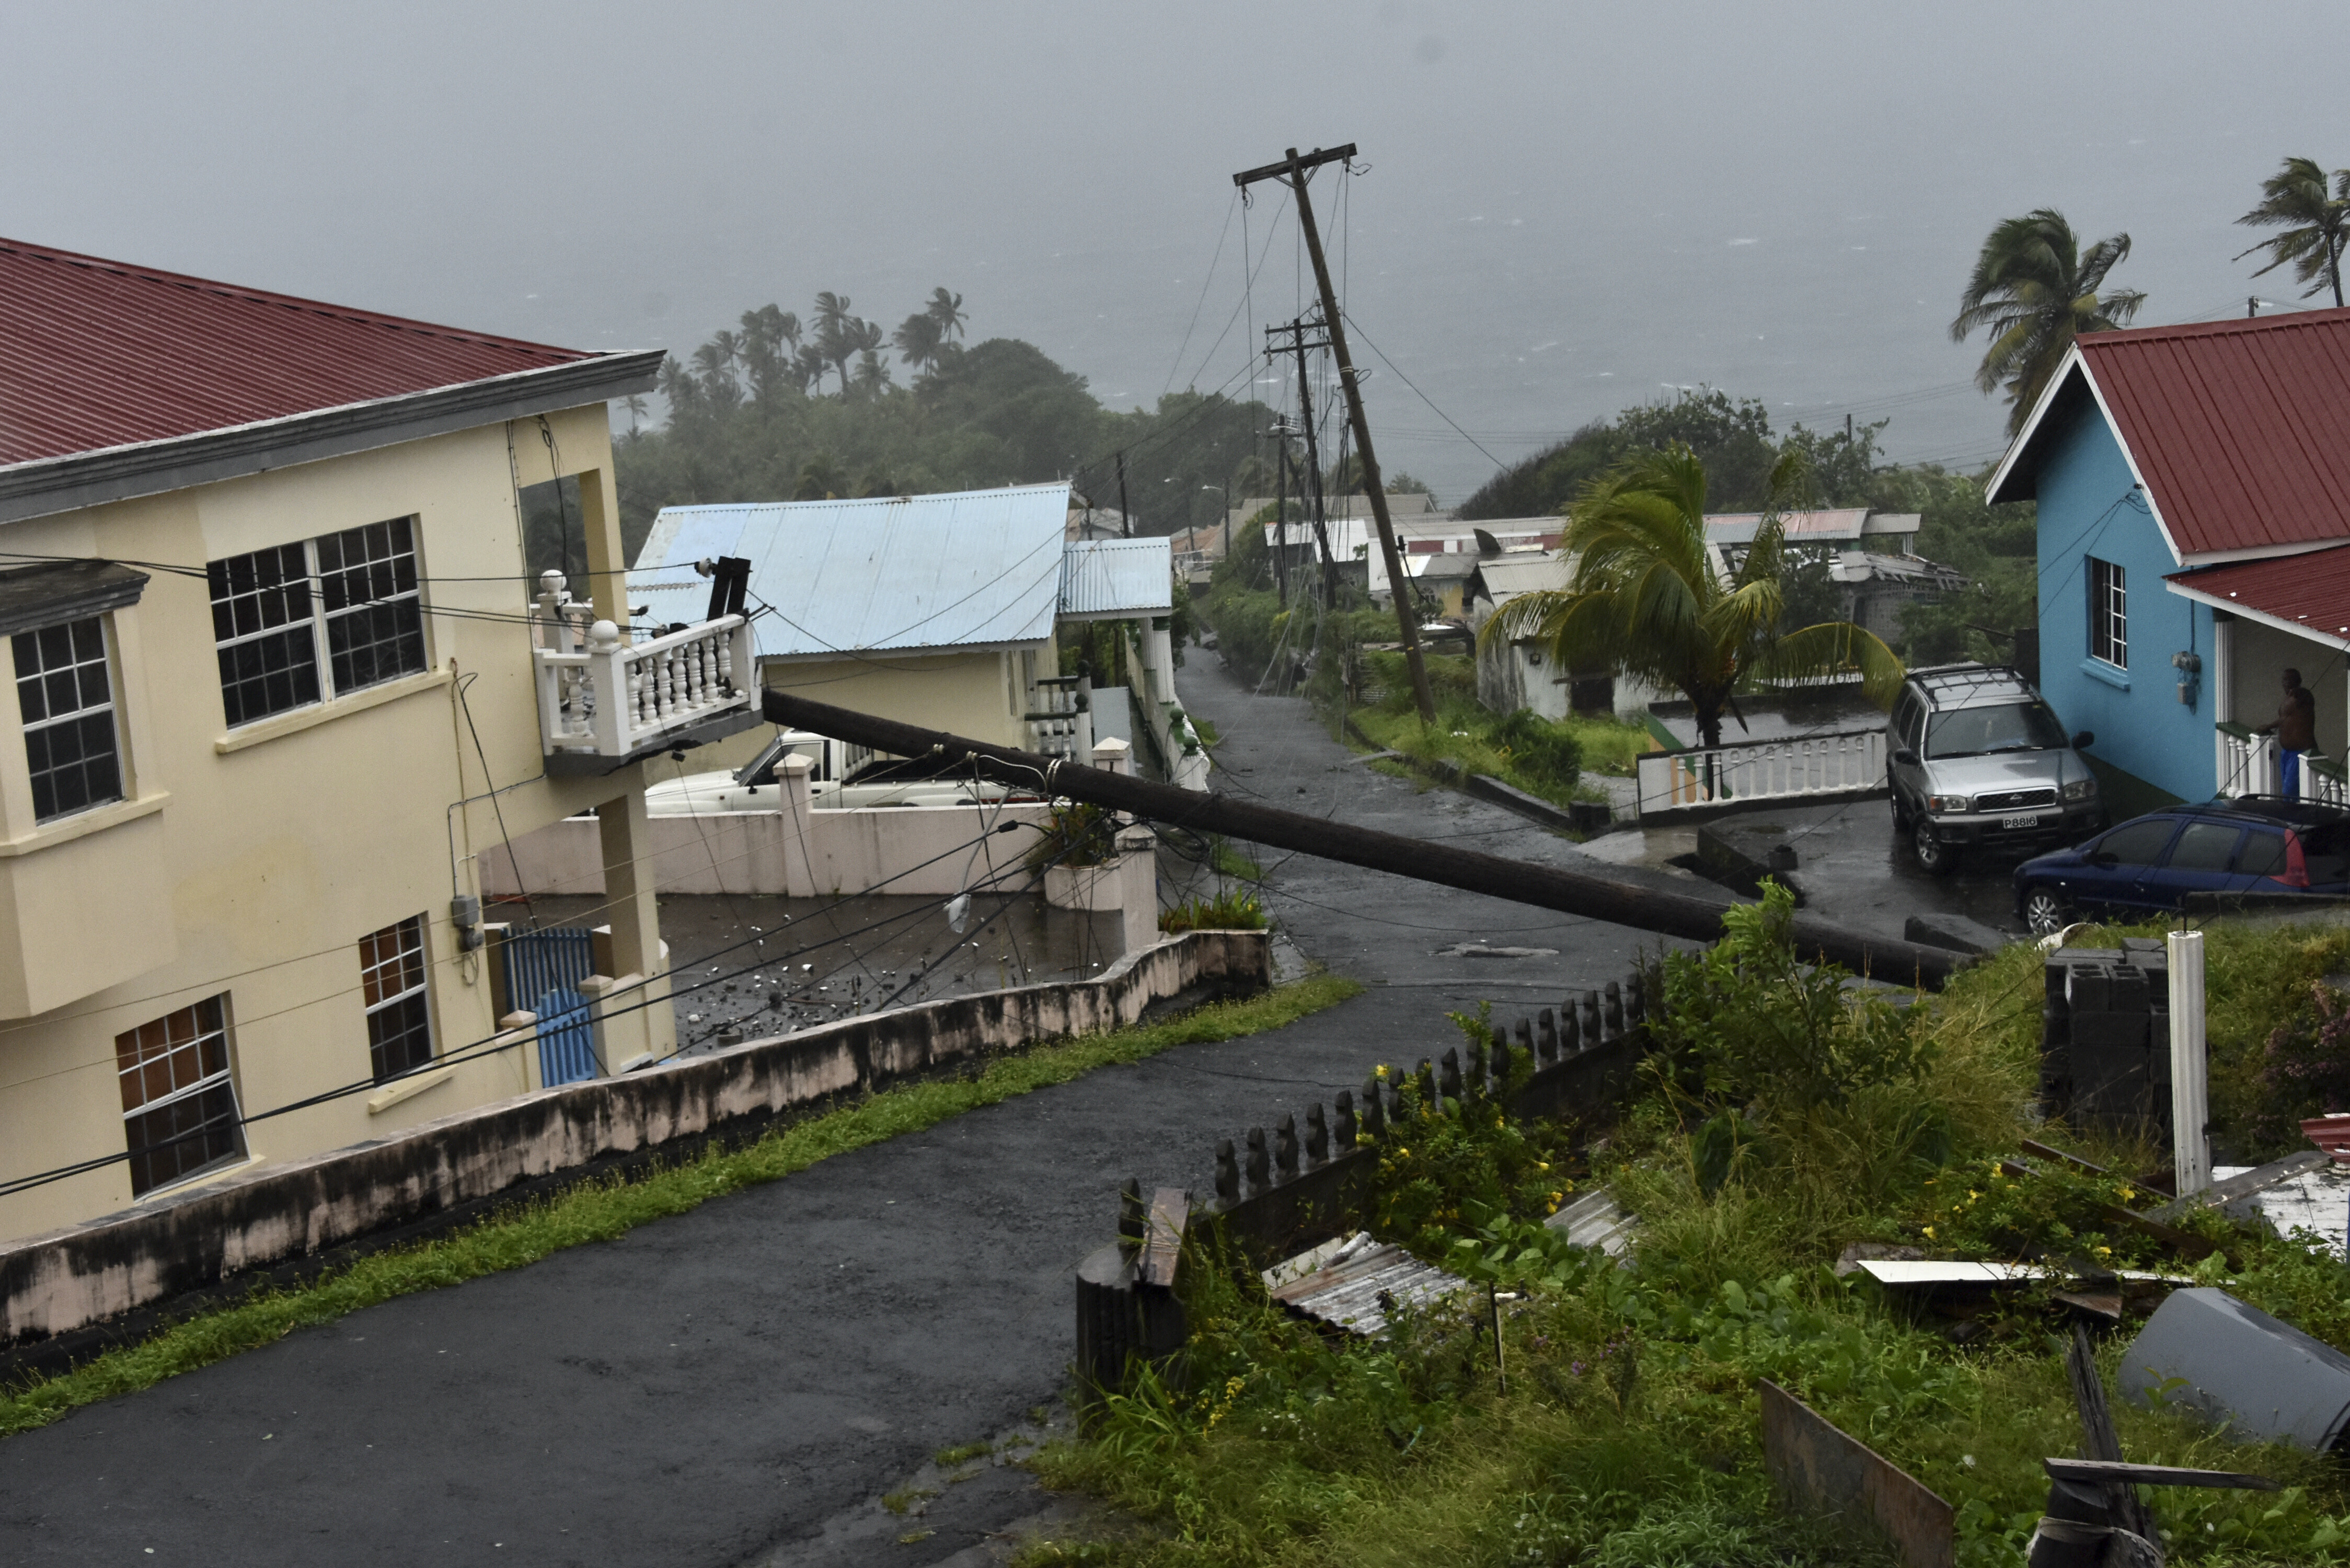 An electrical pole felled by Hurricane Elsa leans on the edge of a residential balcony, in Cedars, St. Vincent, on July 2, 2021.